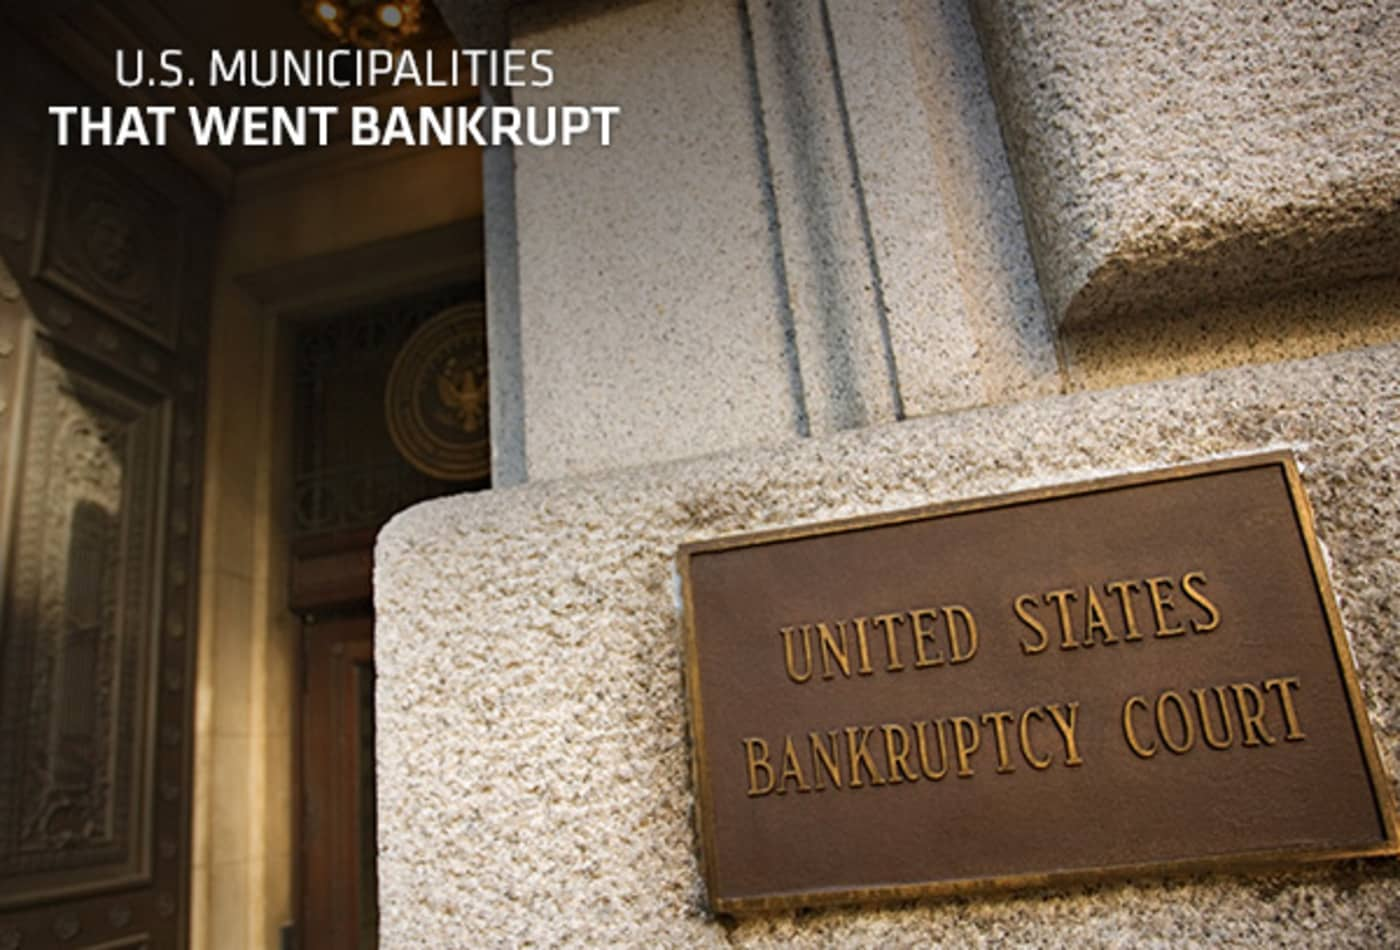 US-municipalities-that-went-bankrupt-cover.jpg